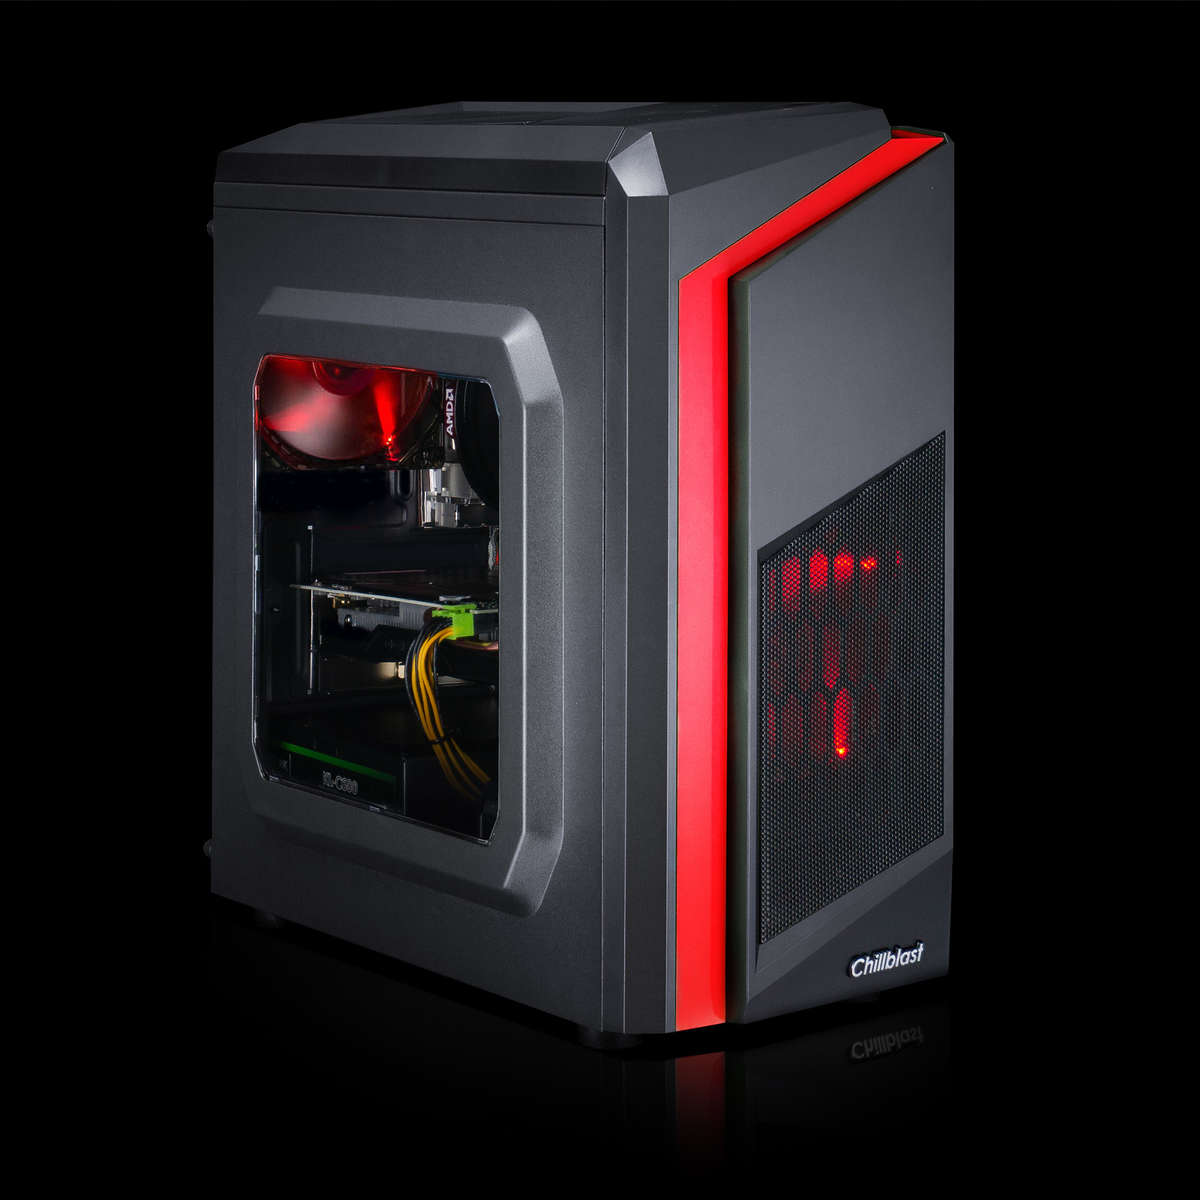 Chillblast Fusion Excalibur GTX 1060 6GB Gaming PC - Outlet